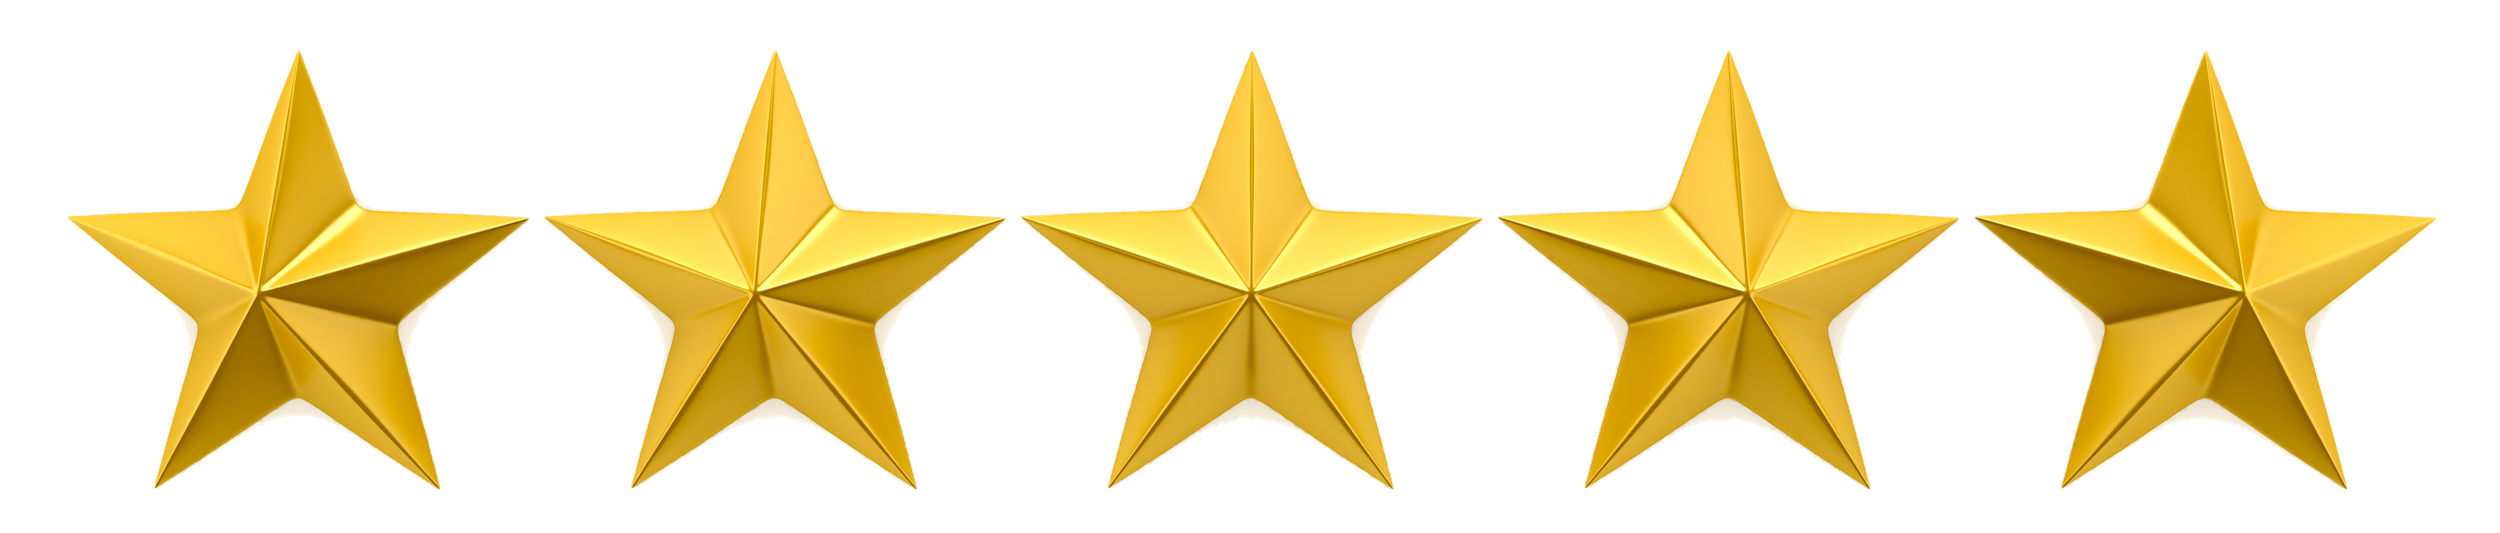 Reviews awards camelot beach. 5 stars png no background clip freeuse library